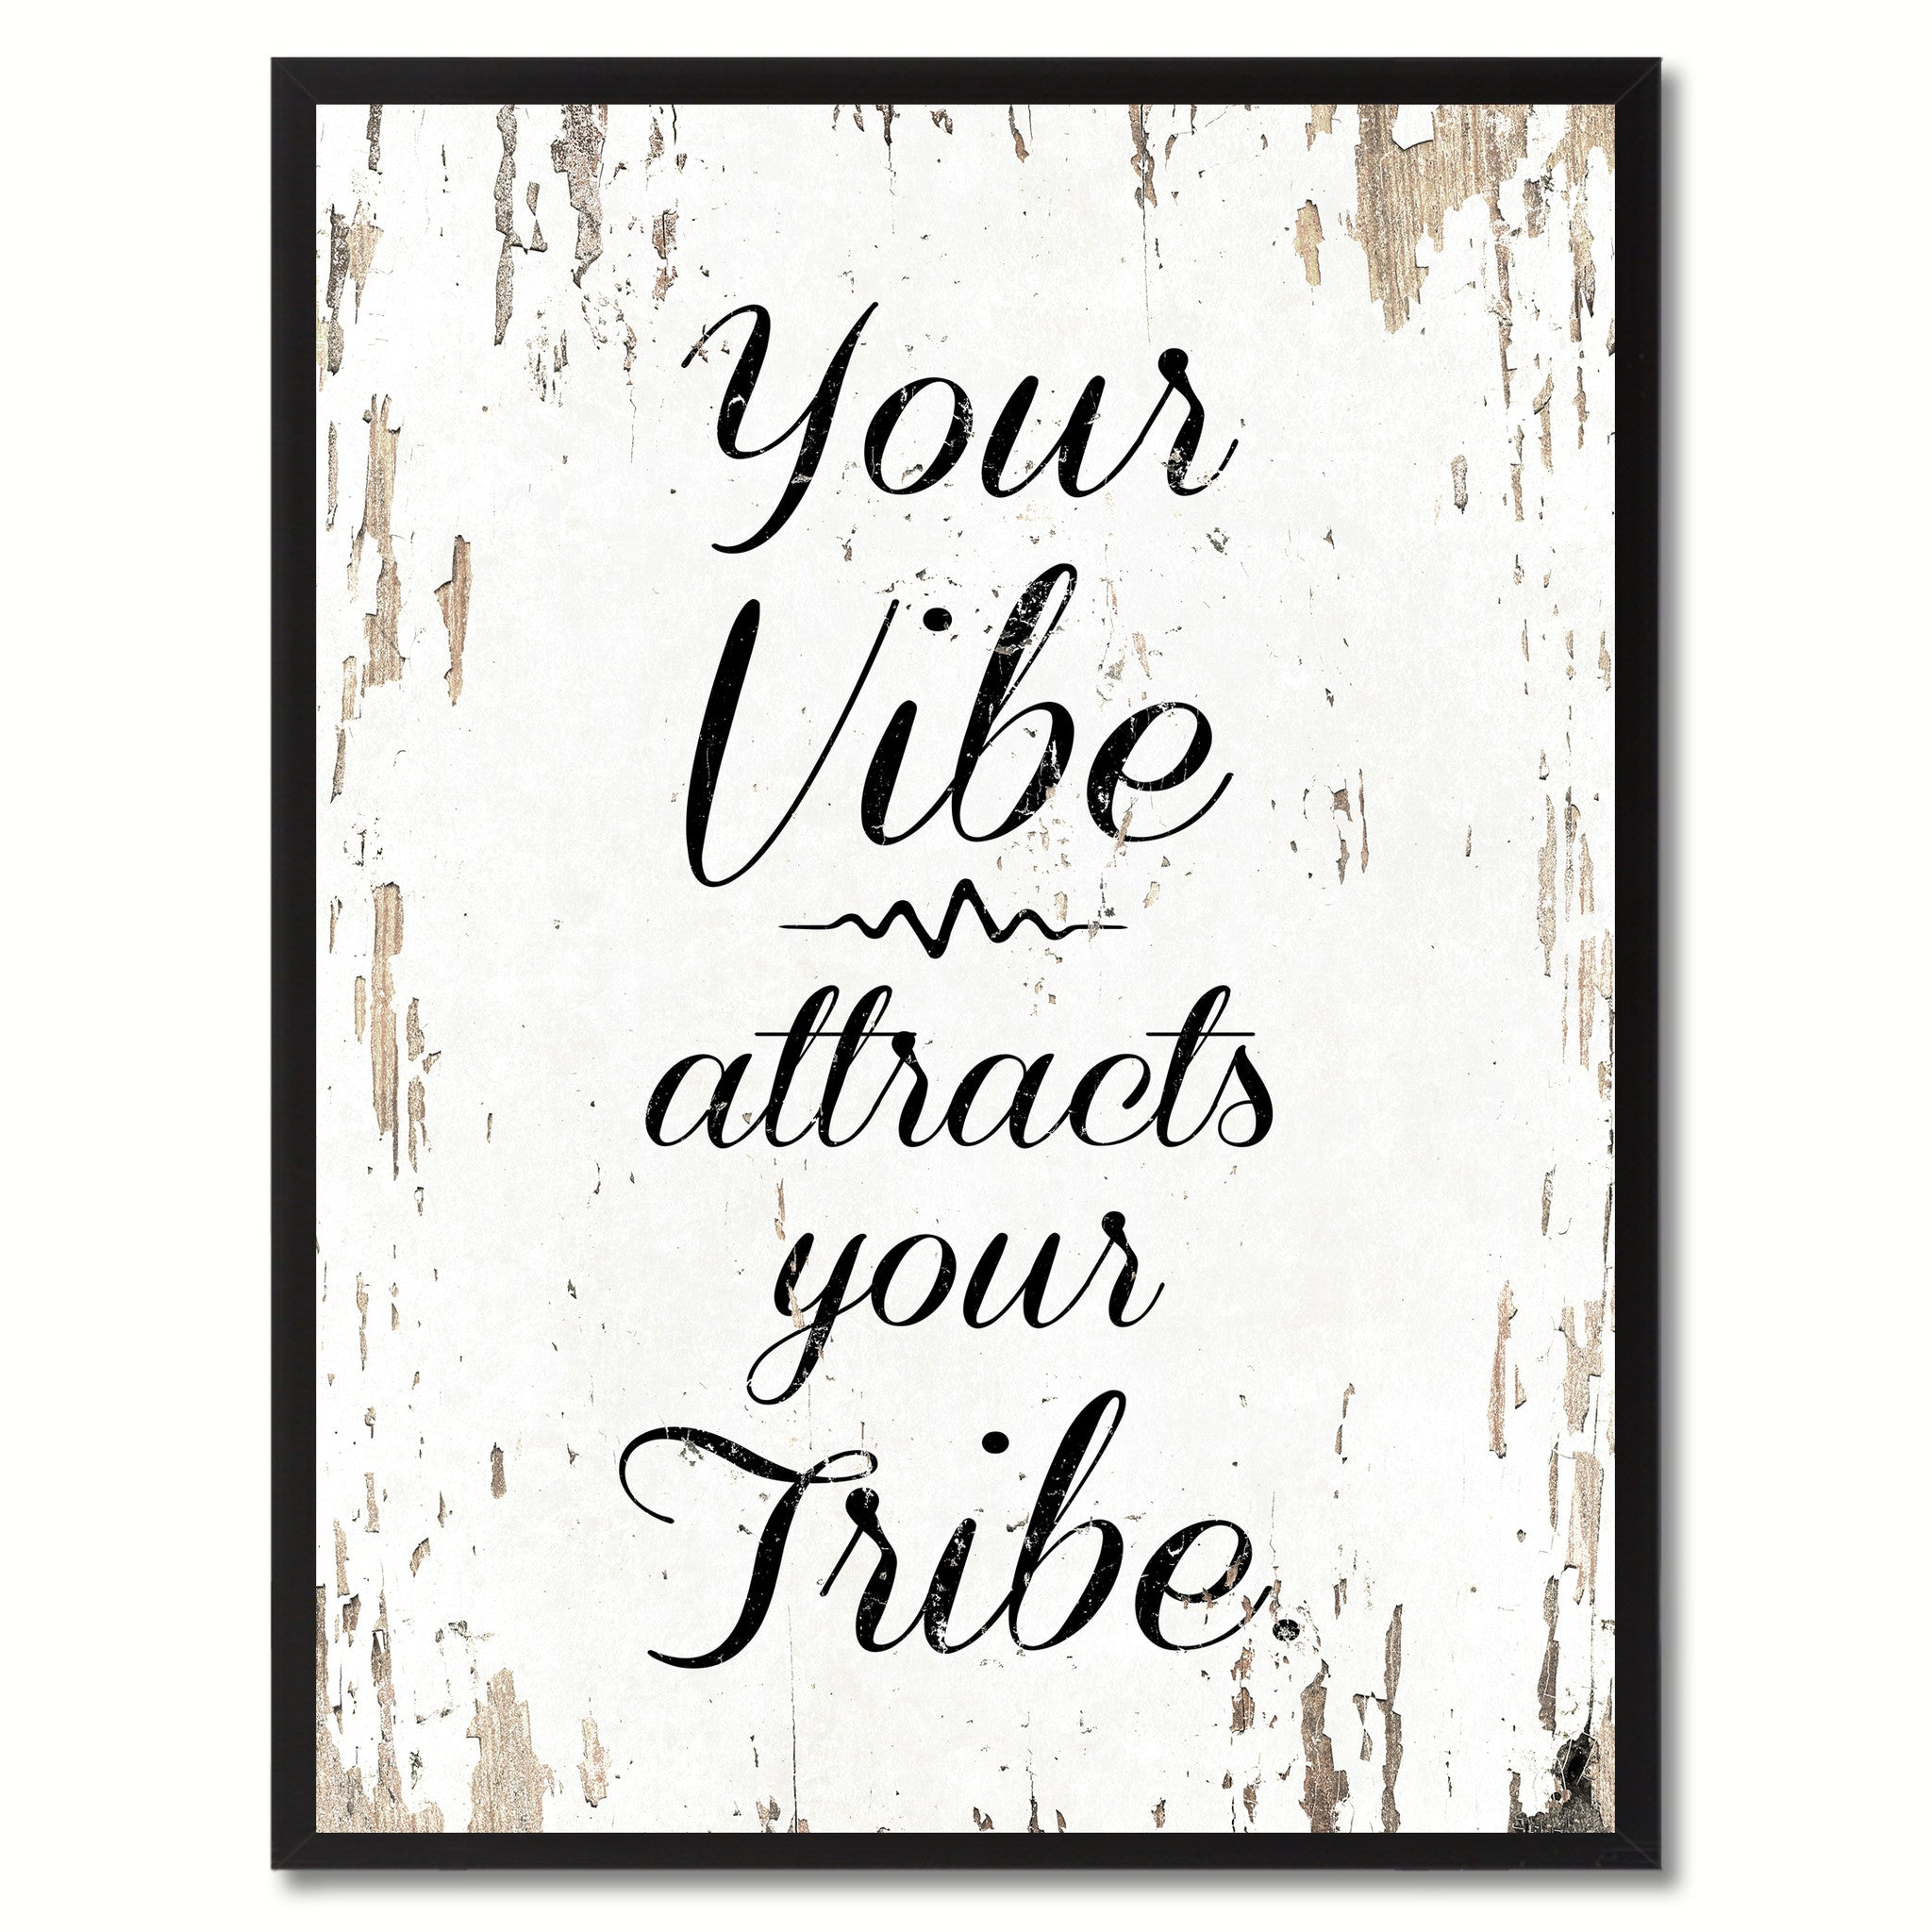 Quotes Wall Art Your Vibe Attracts Your Tribe Inspirational Motivation Saying